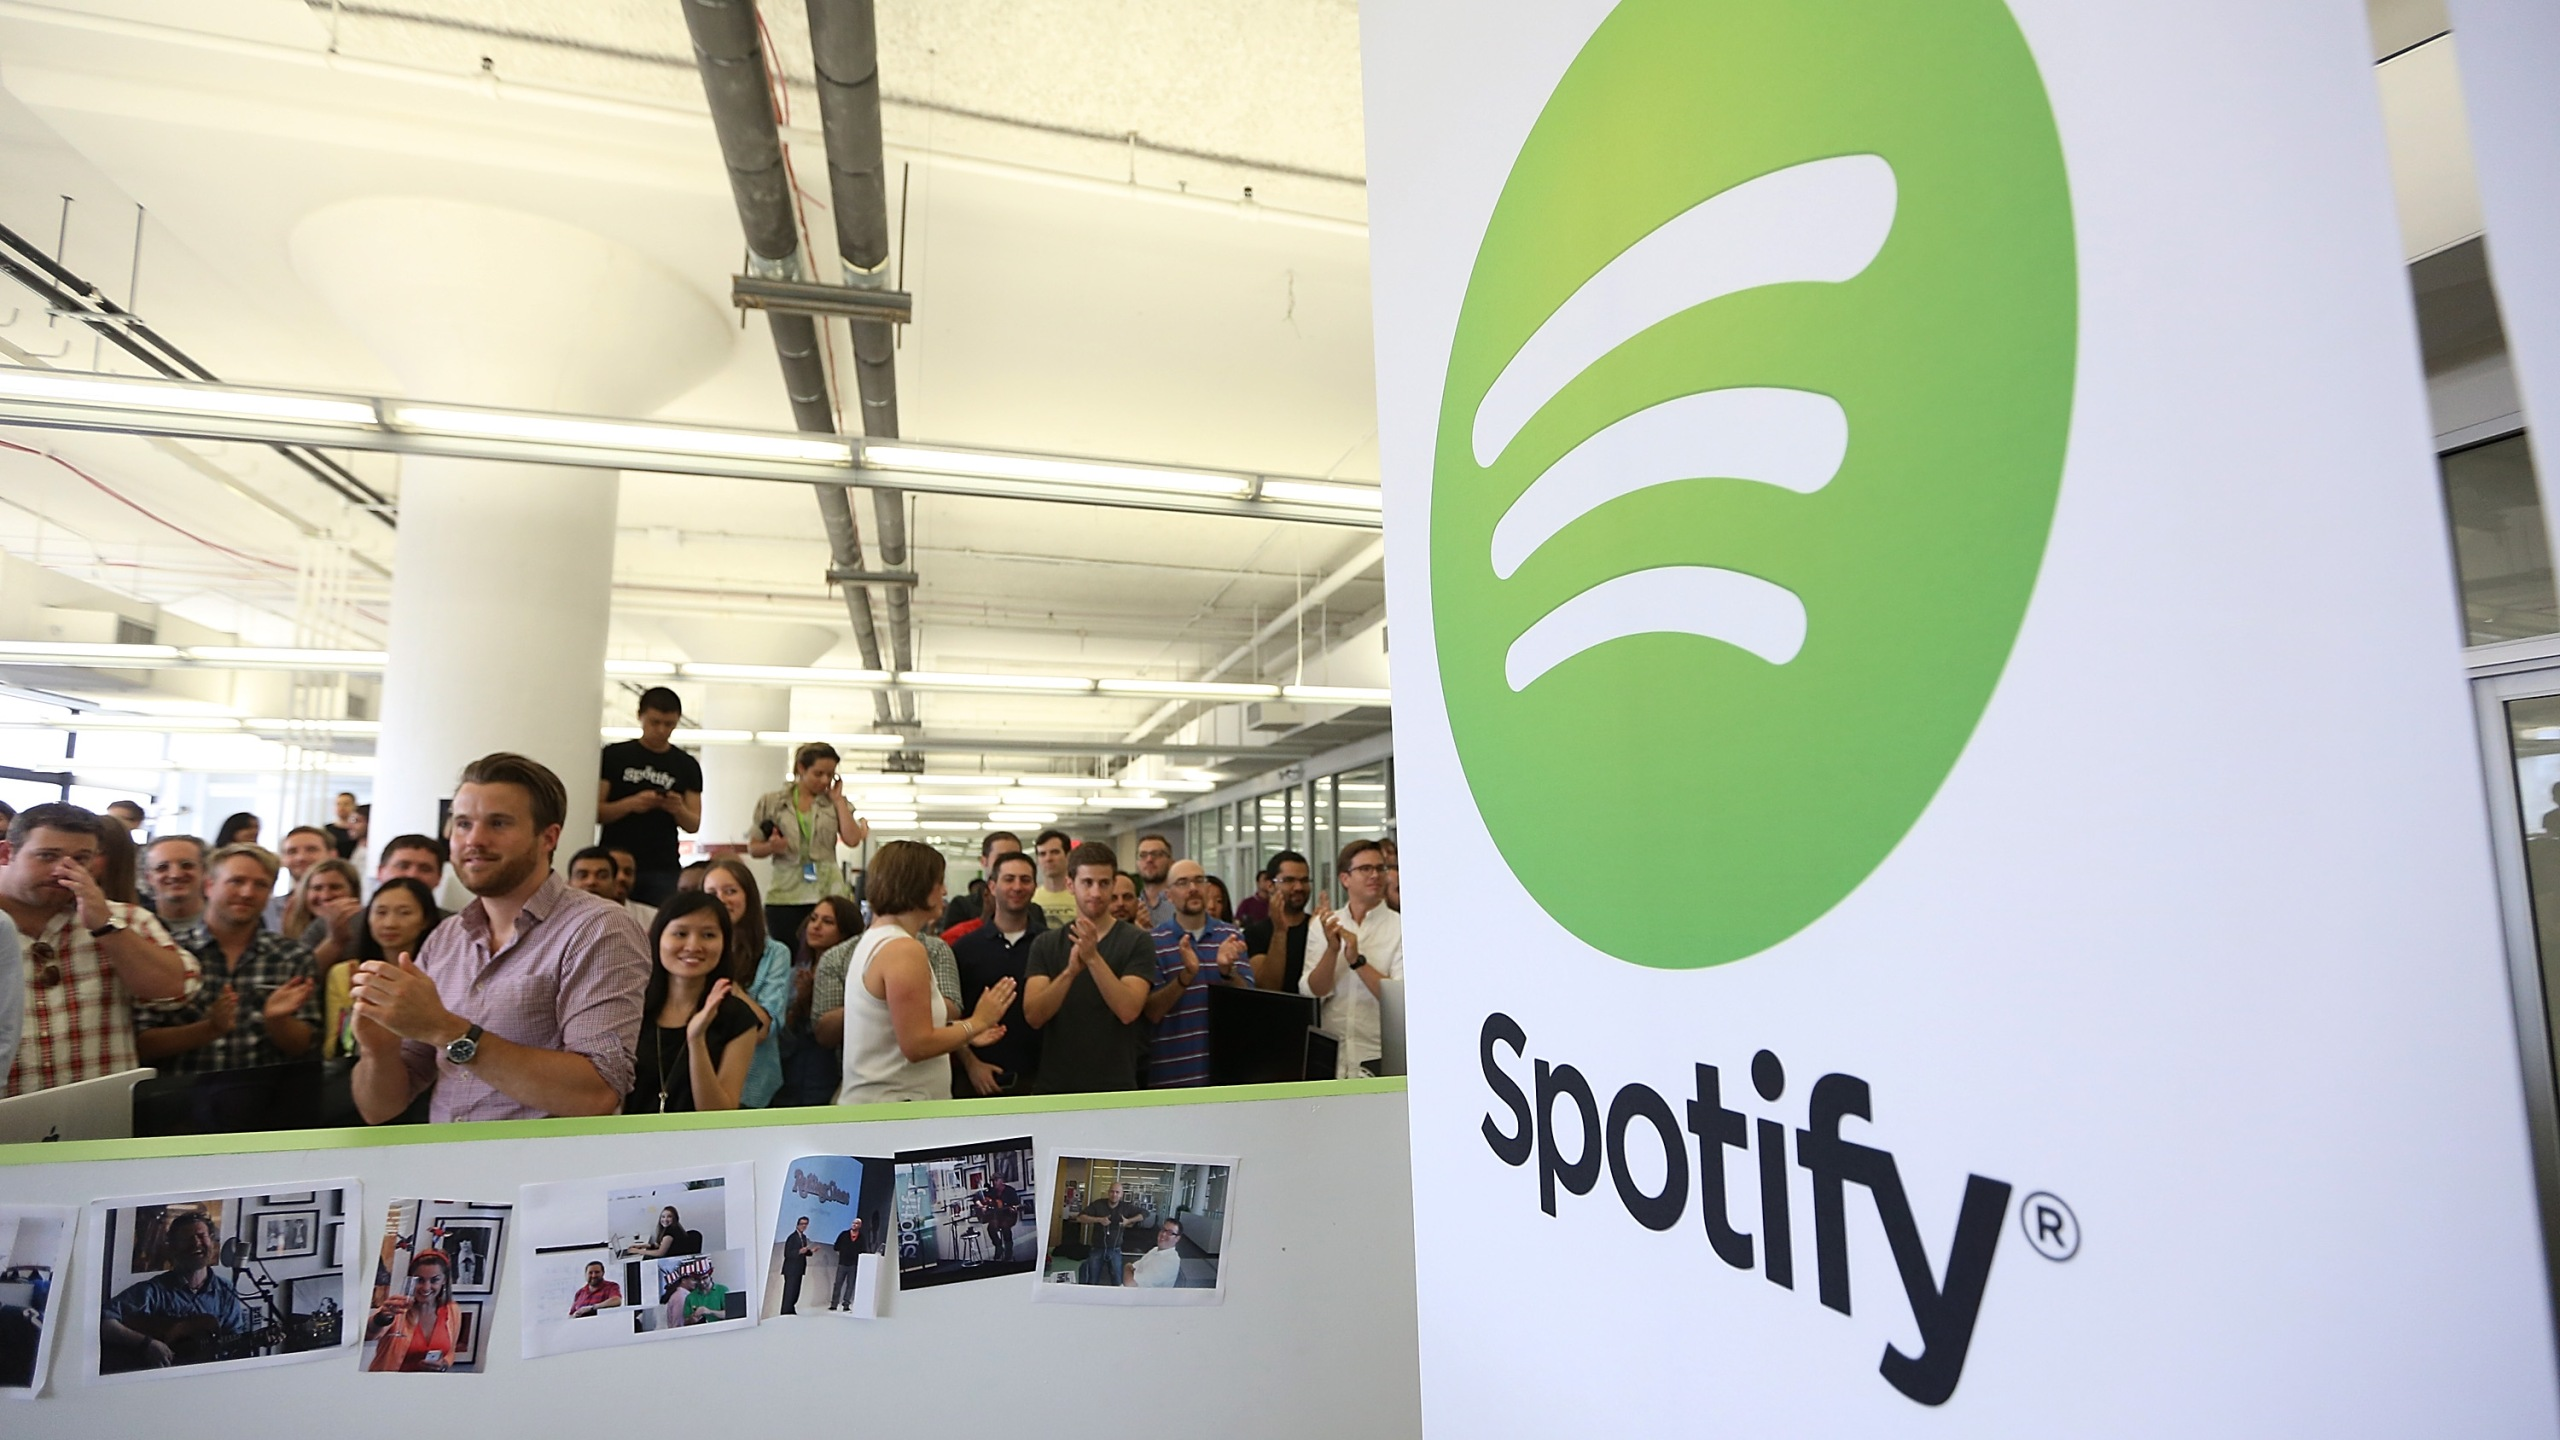 People gather in Spotify offices following a press conference on June 27, 2013 in New York City. (Credit: Mario Tama/Getty Images)